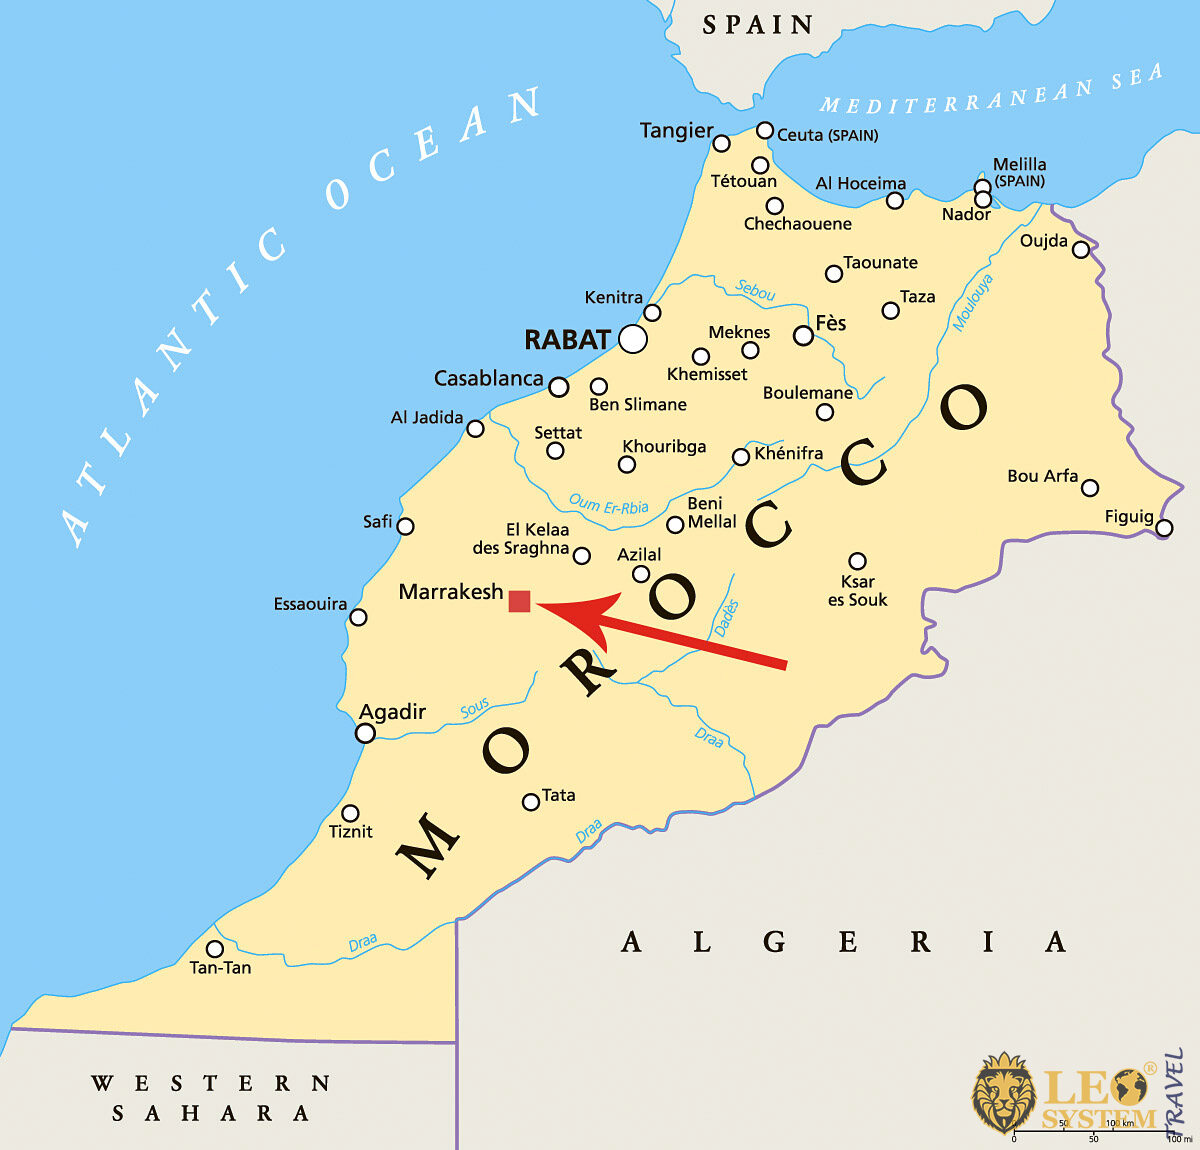 Image of a map showing the location of the city of Marrakesh, Morocco